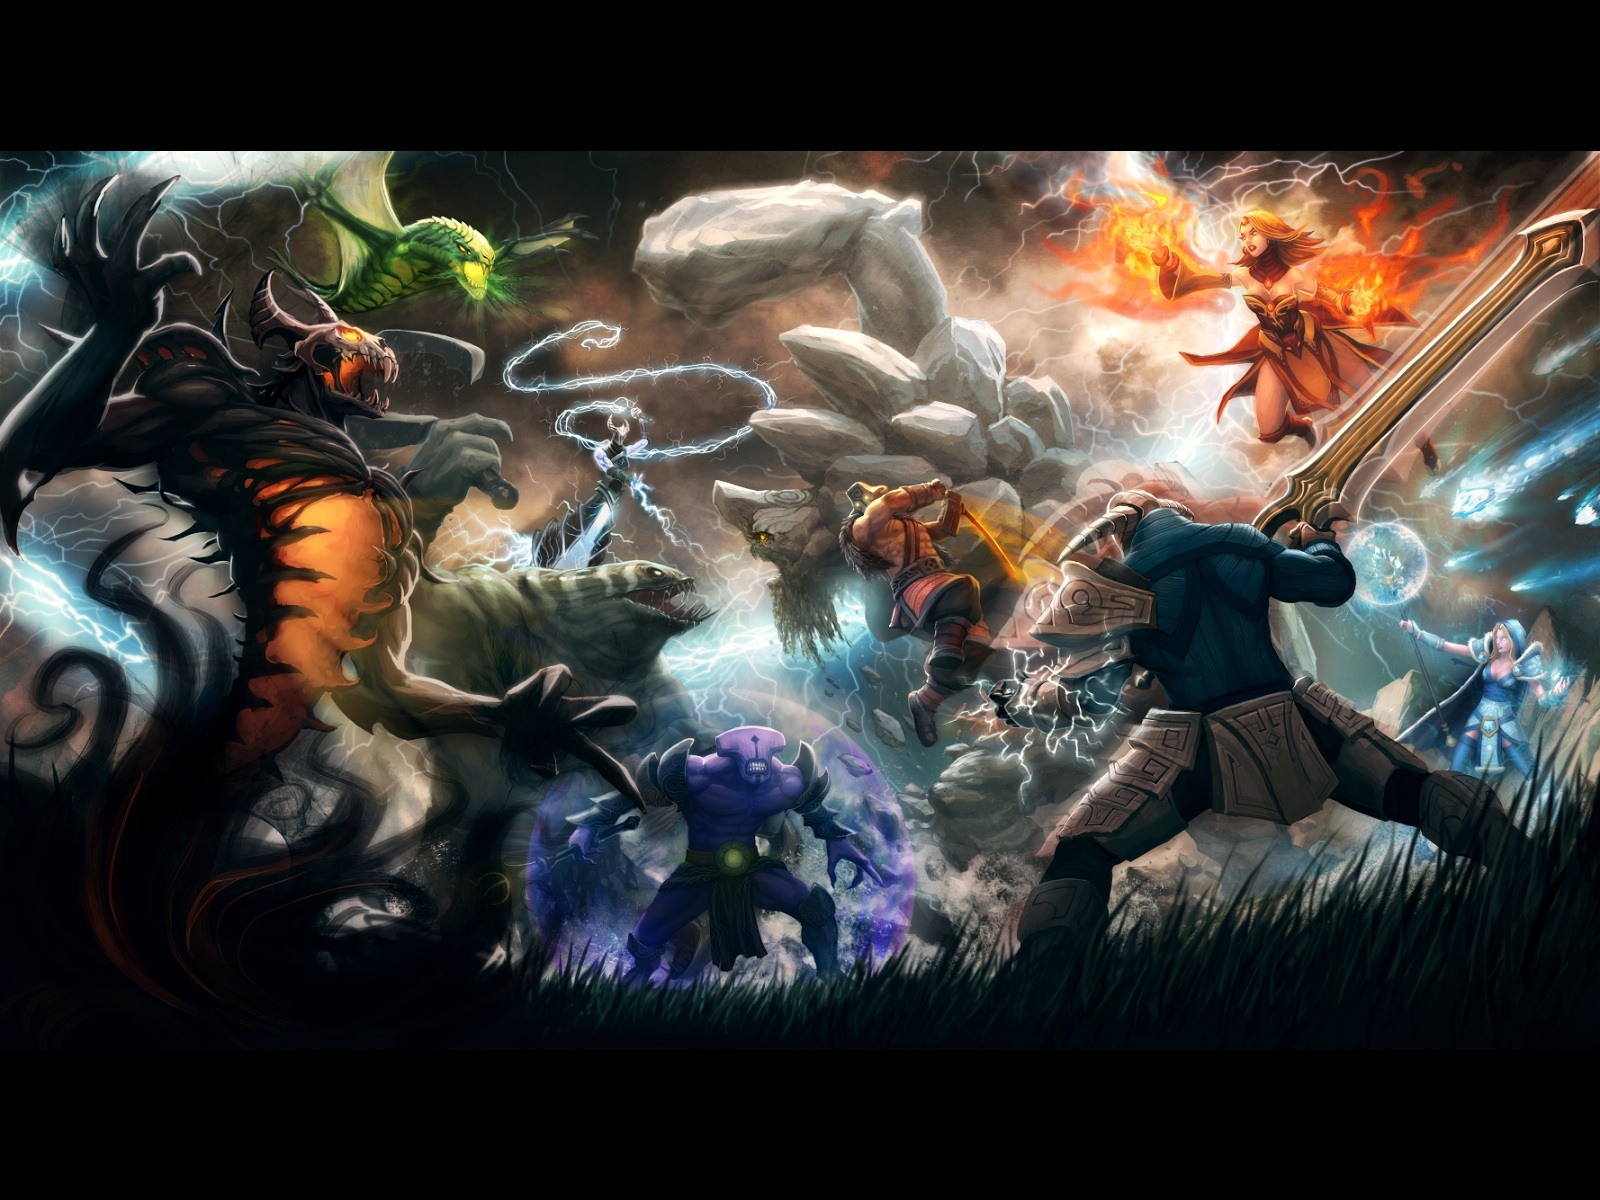 Epic Battle Wallpaper 1600x1200 Epic Battle 1600x1200